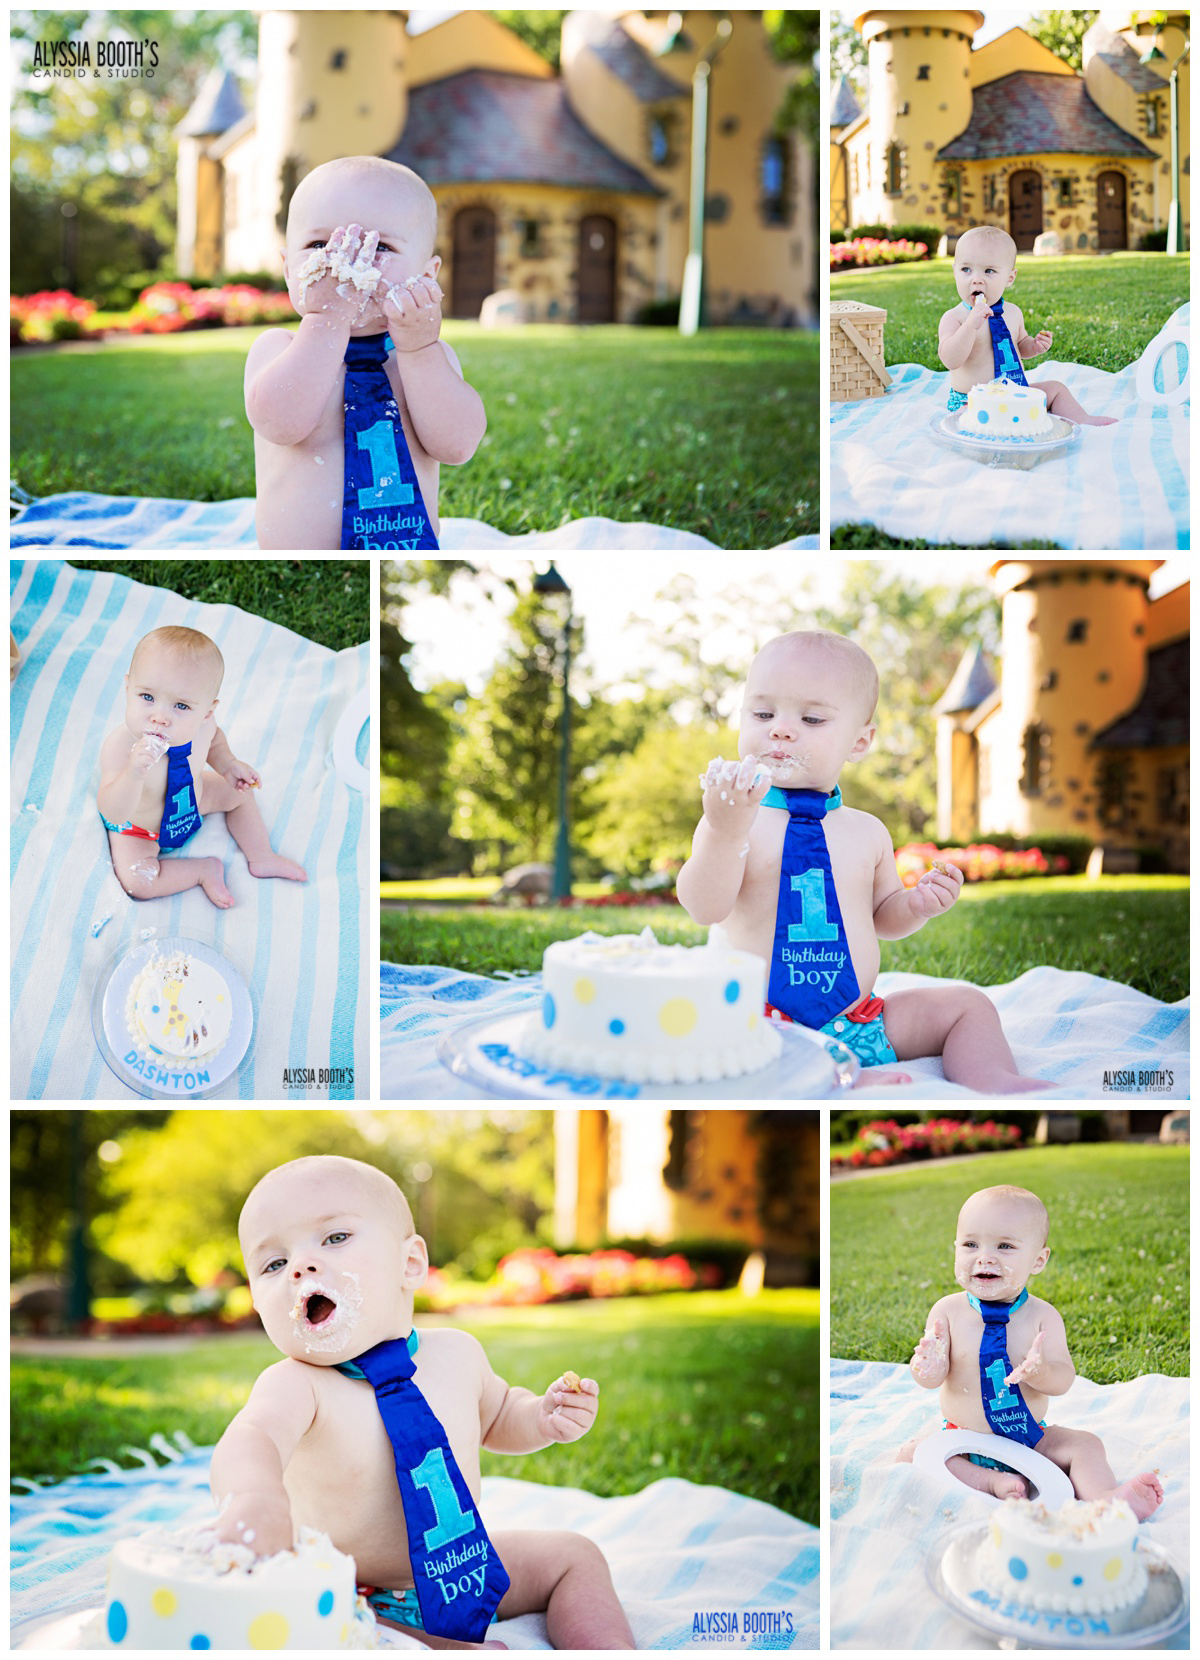 Cake Smash | First Birthday | Alyssia Booth's Candid & Studio | Michigan Photographer